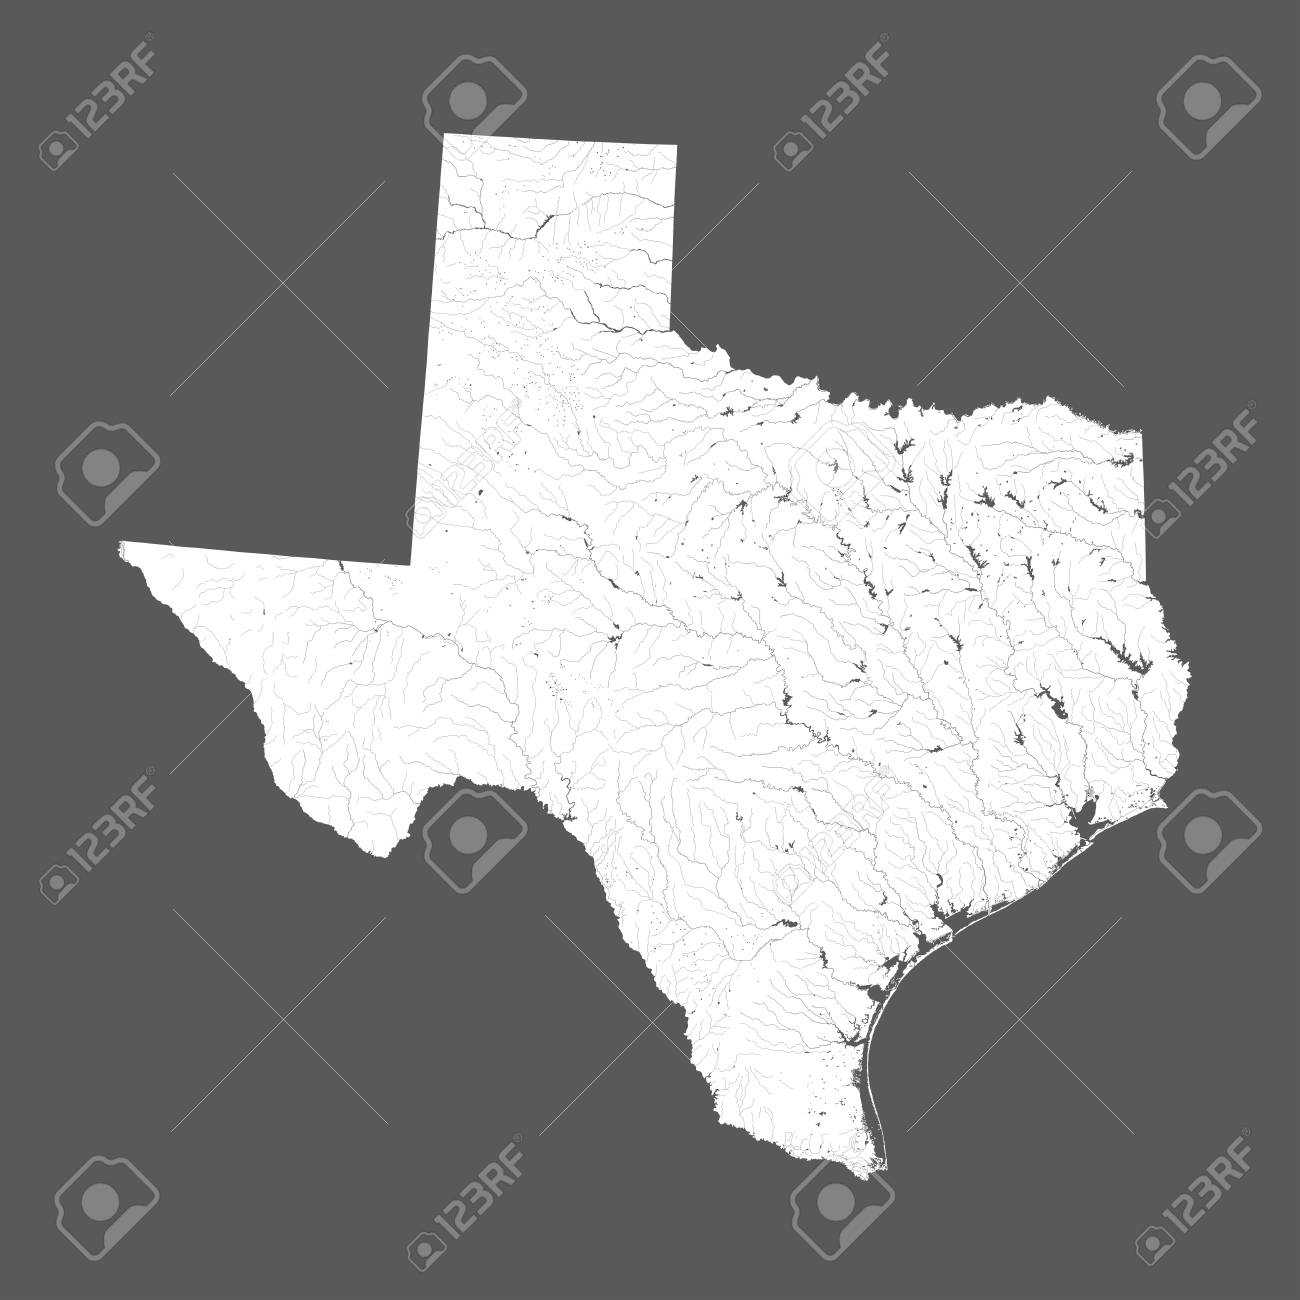 Map Of Texas Us.U S States Map Of Texas Hand Made Rivers And Lakes Are Shown